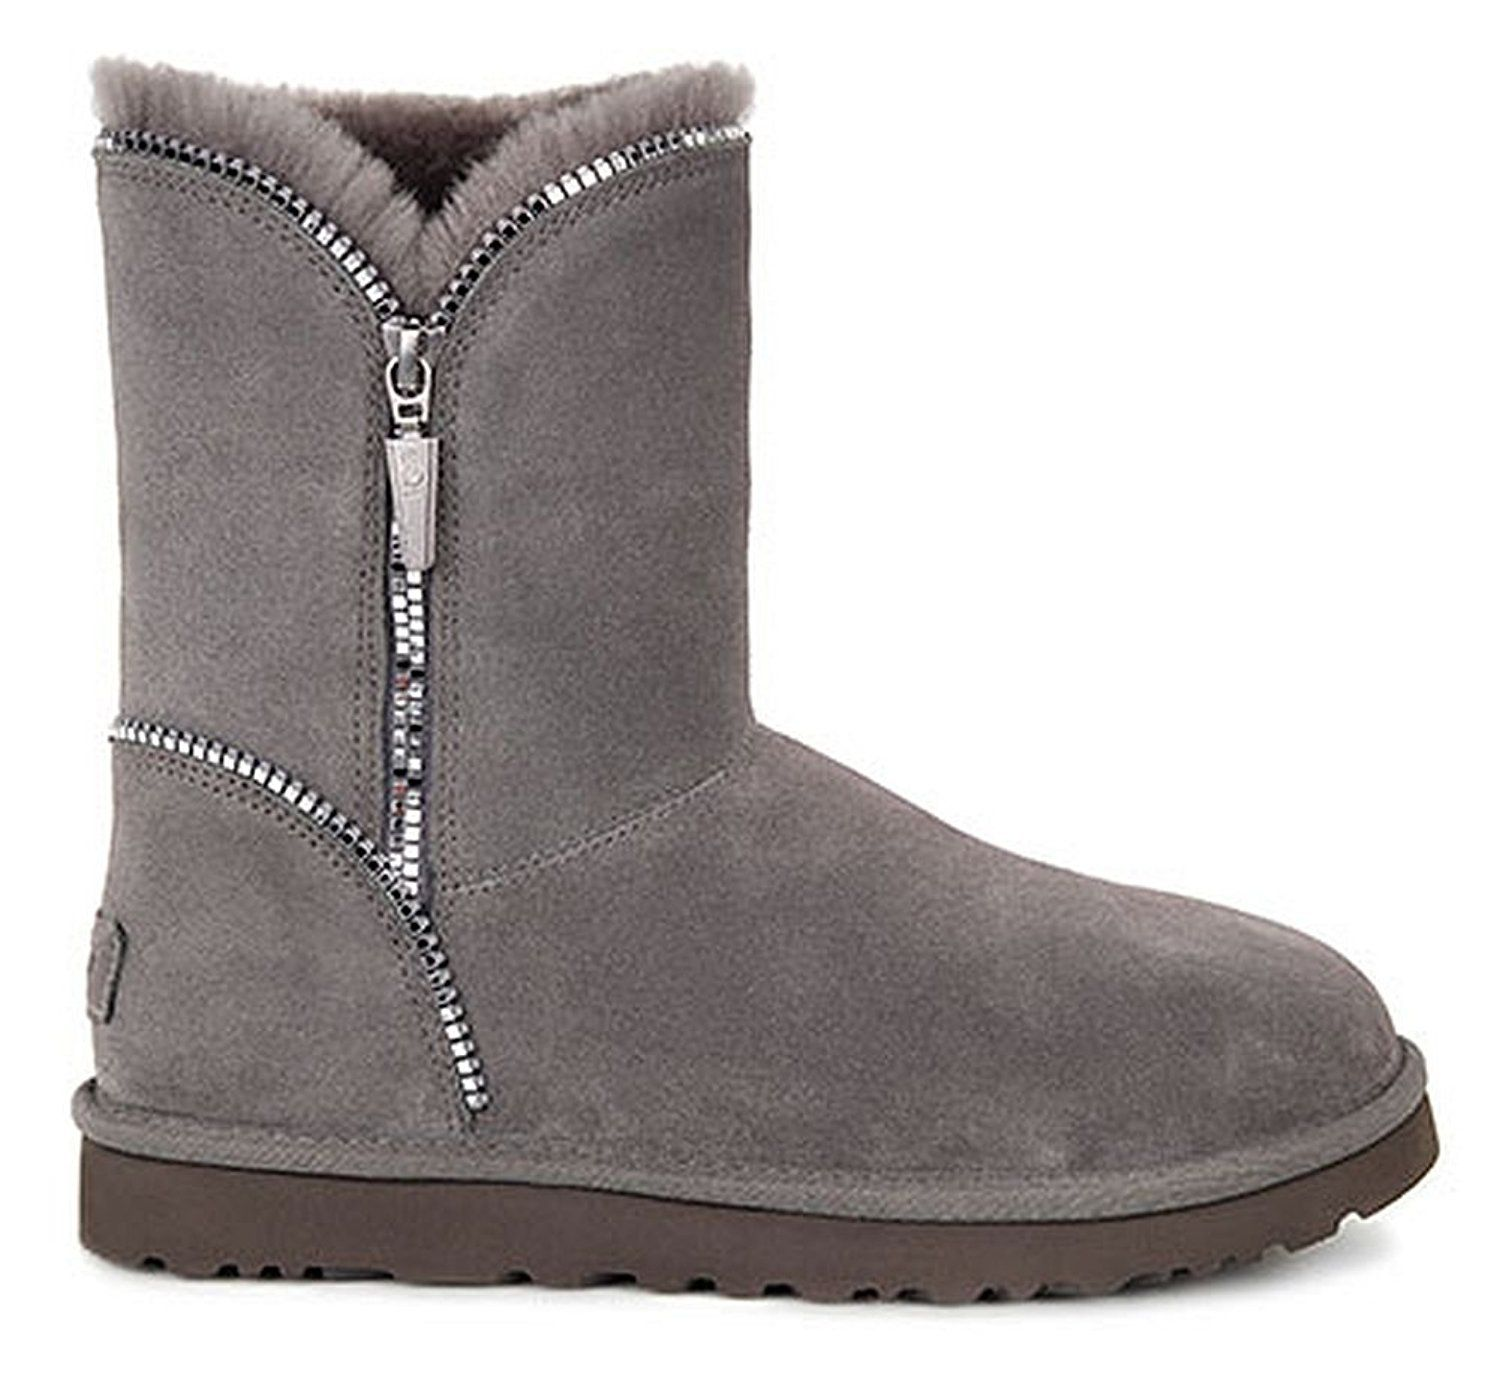 735677d84e5aa ... coupon for boots39 on sheepskin boots ugg australia and baileys dce6c  7aea8